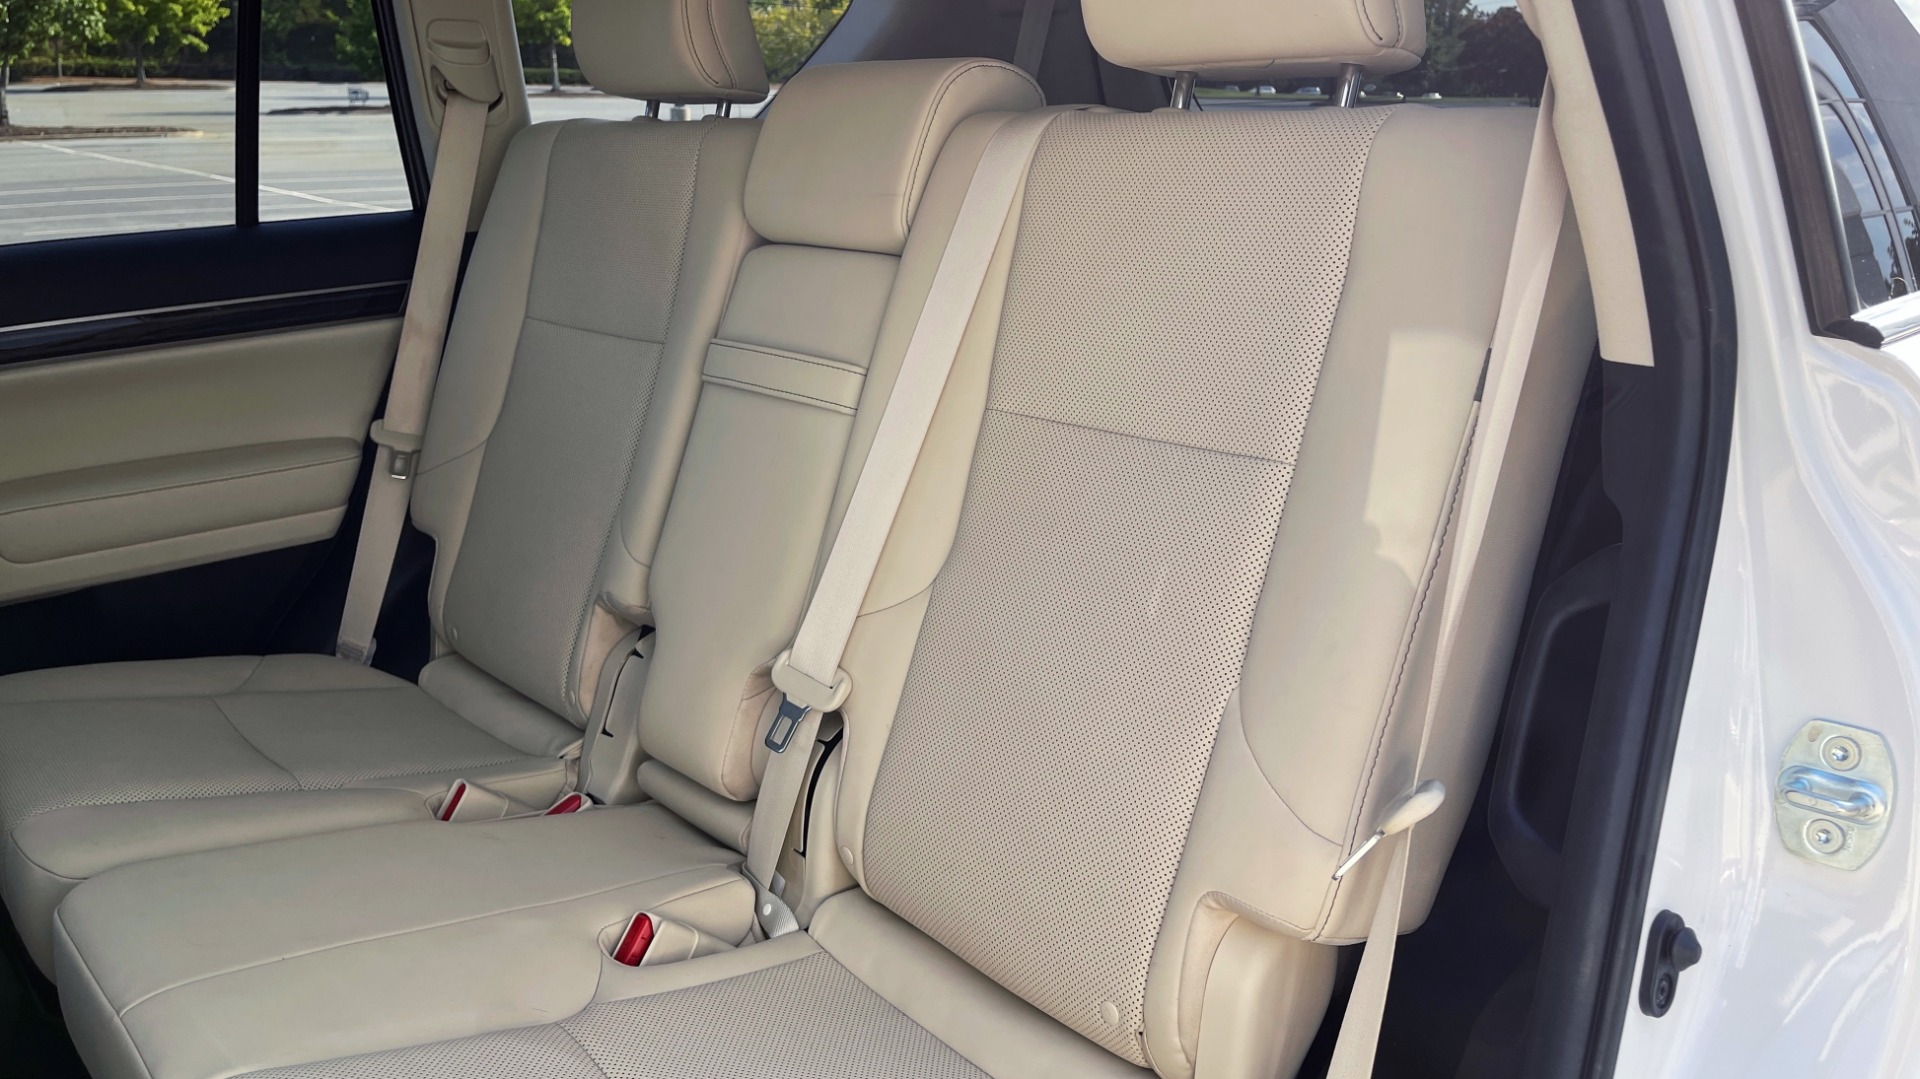 Used 2020 Lexus GX 460 PREMIUM / AWD / NAV / SUNROOF / 3-ROW / REARVIEW for sale $54,495 at Formula Imports in Charlotte NC 28227 53